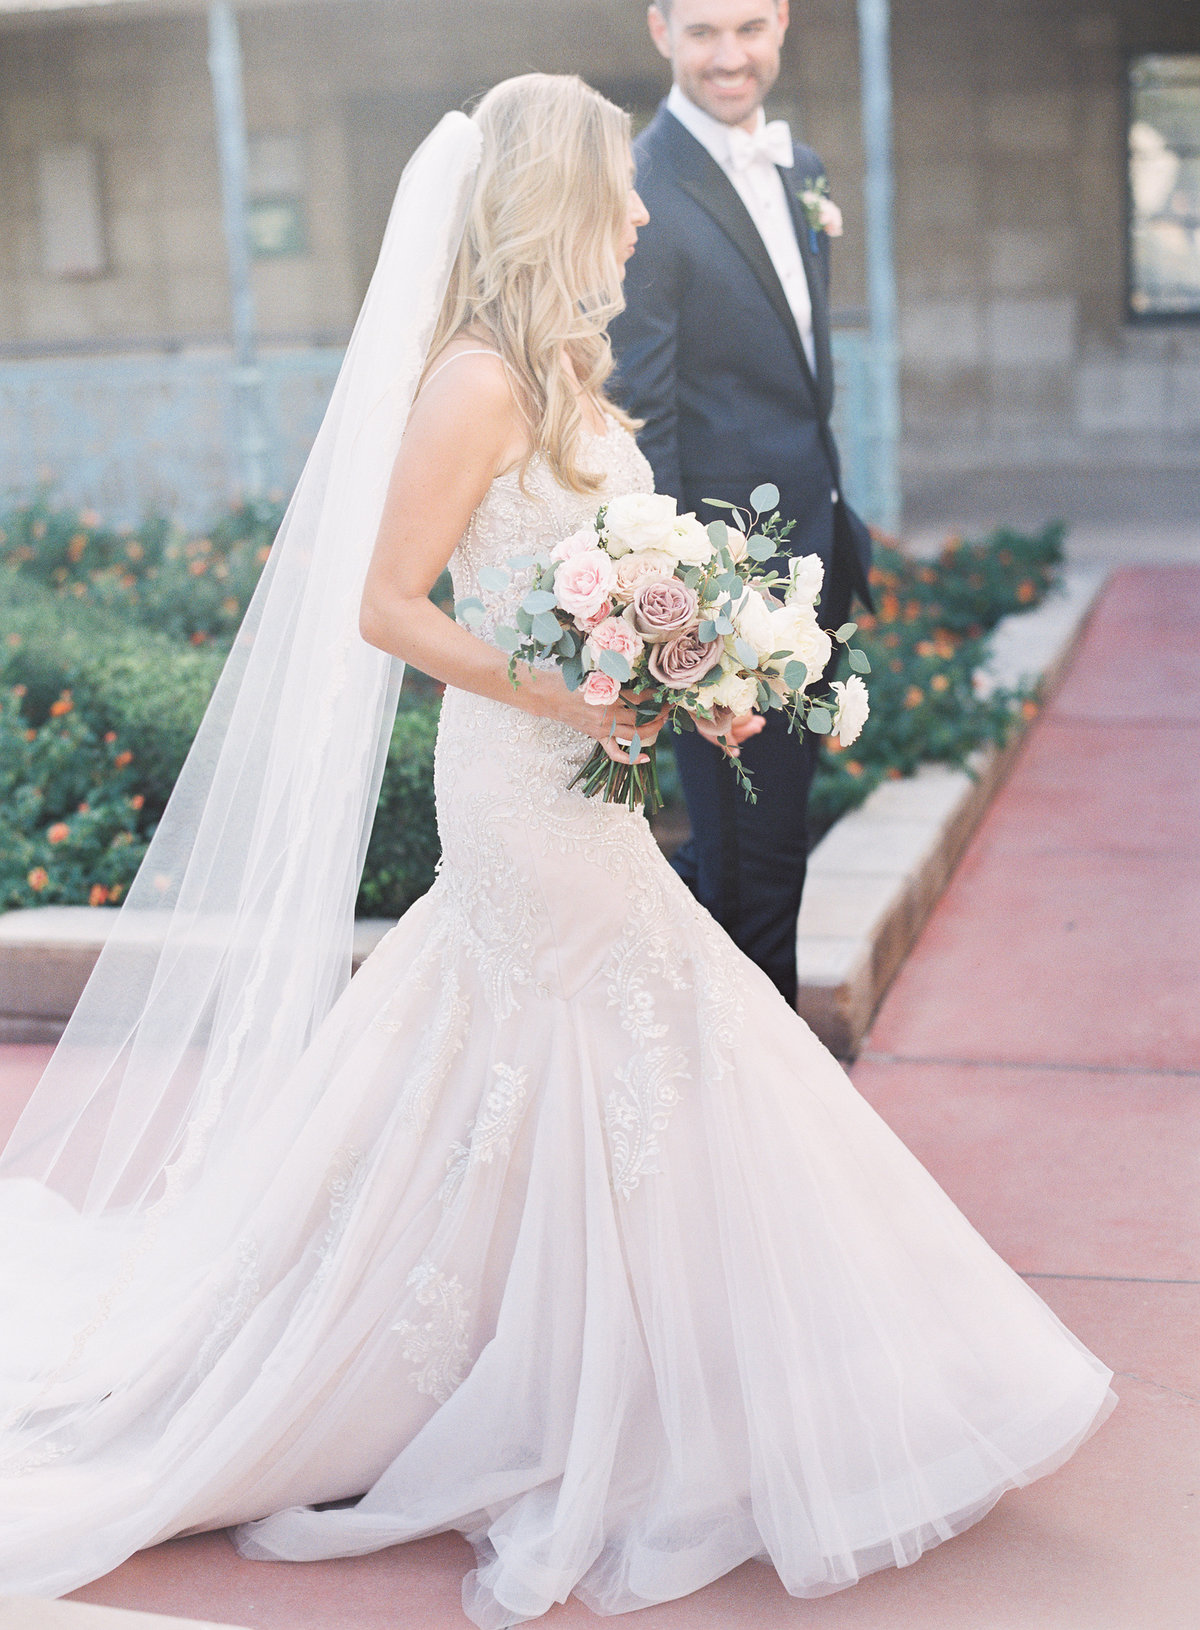 Arizona Biltmore Wedding - Mary Claire Photography-23